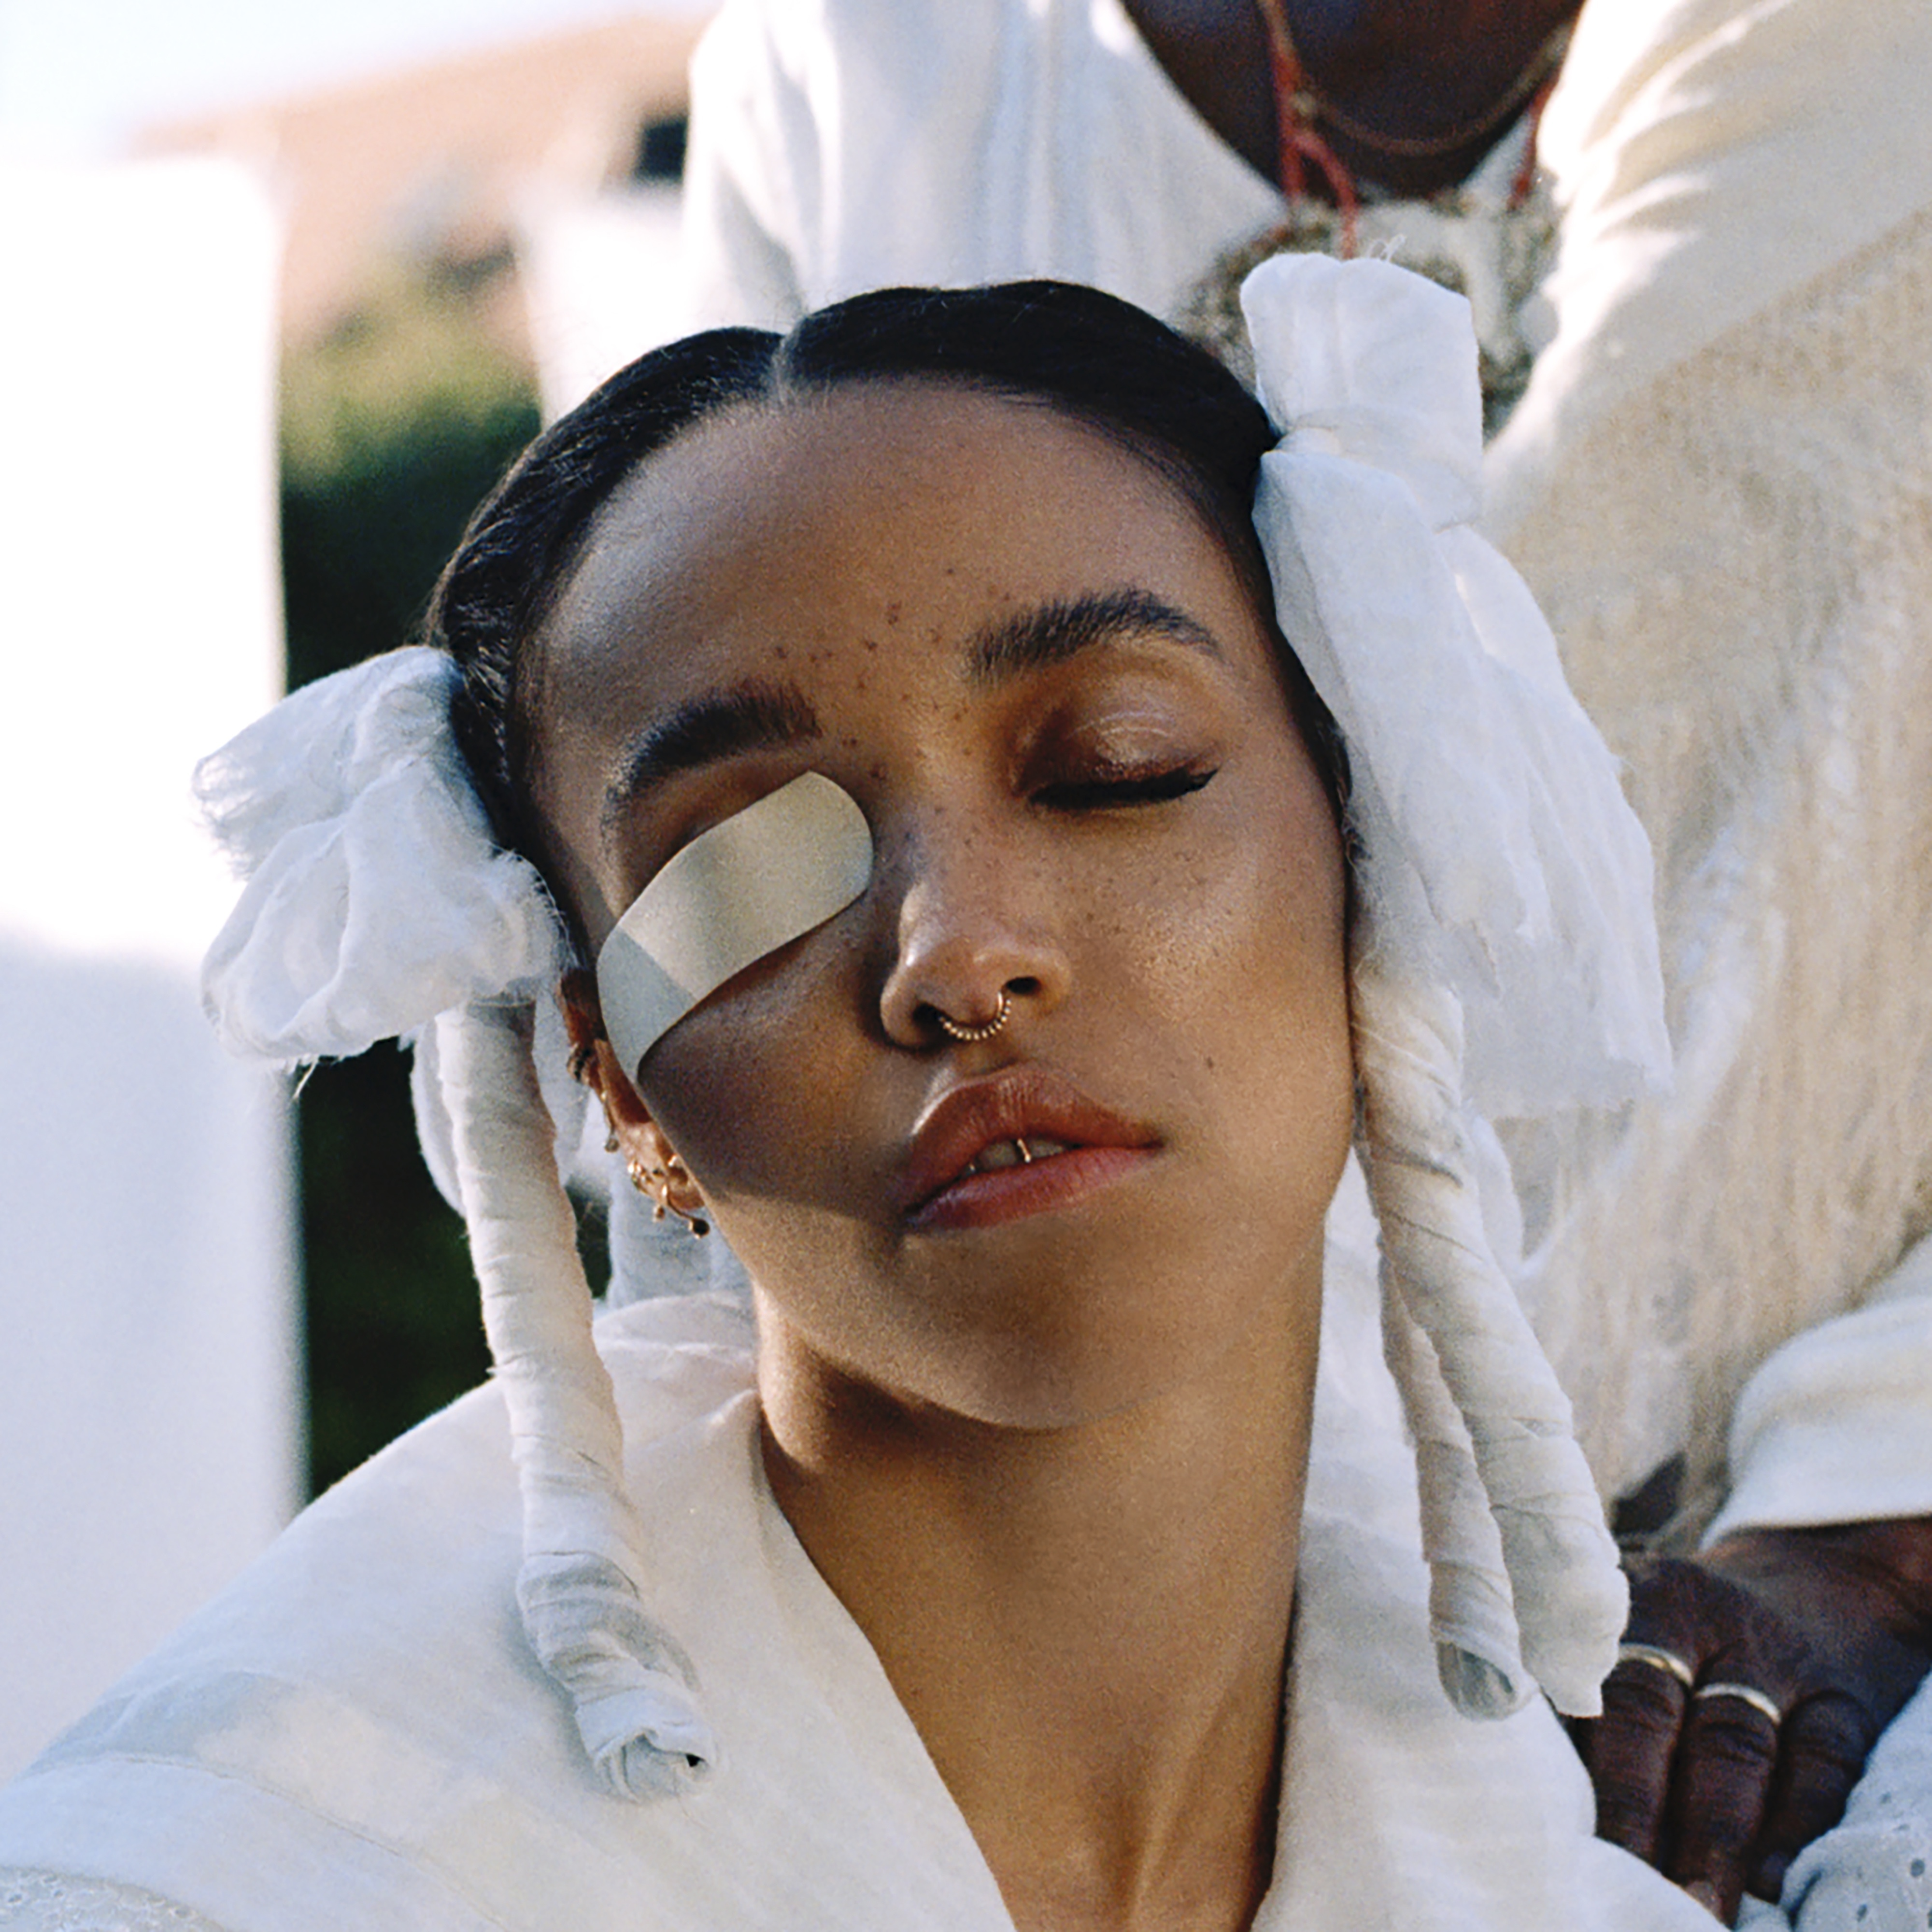 FKA twigs shares new song 'Home With You'